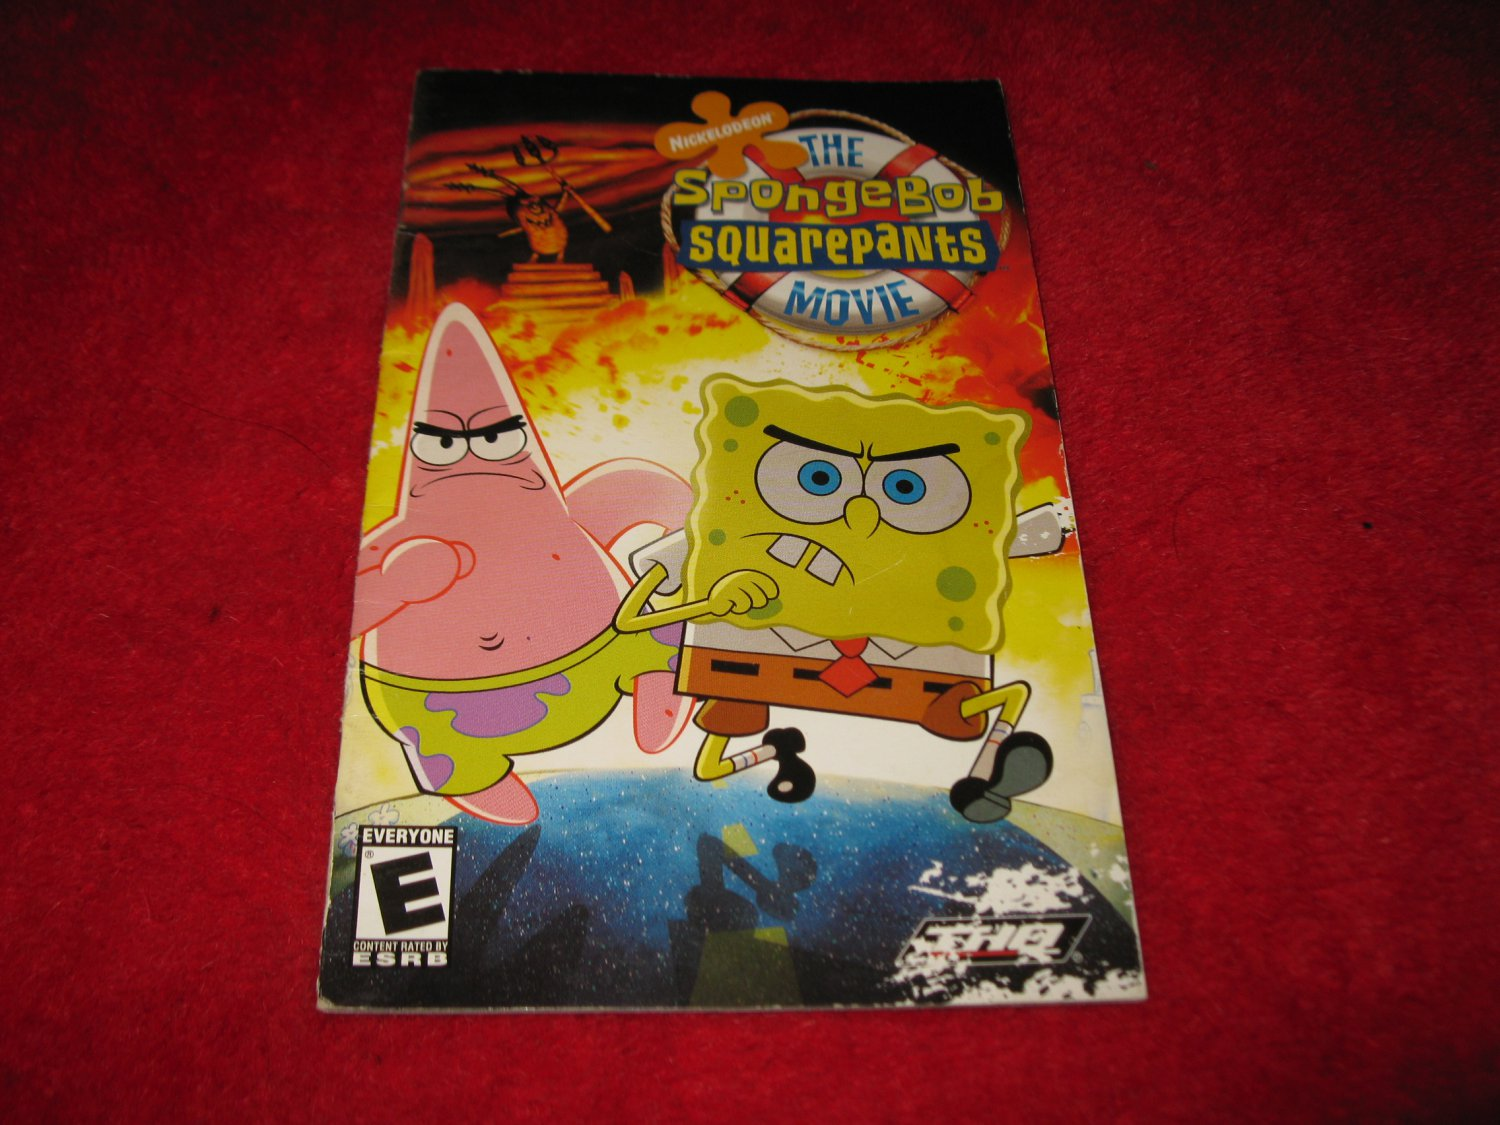 The Spongebob Squarepants Movie : Playstation 2 PS2 Video Game Instruction Booklet